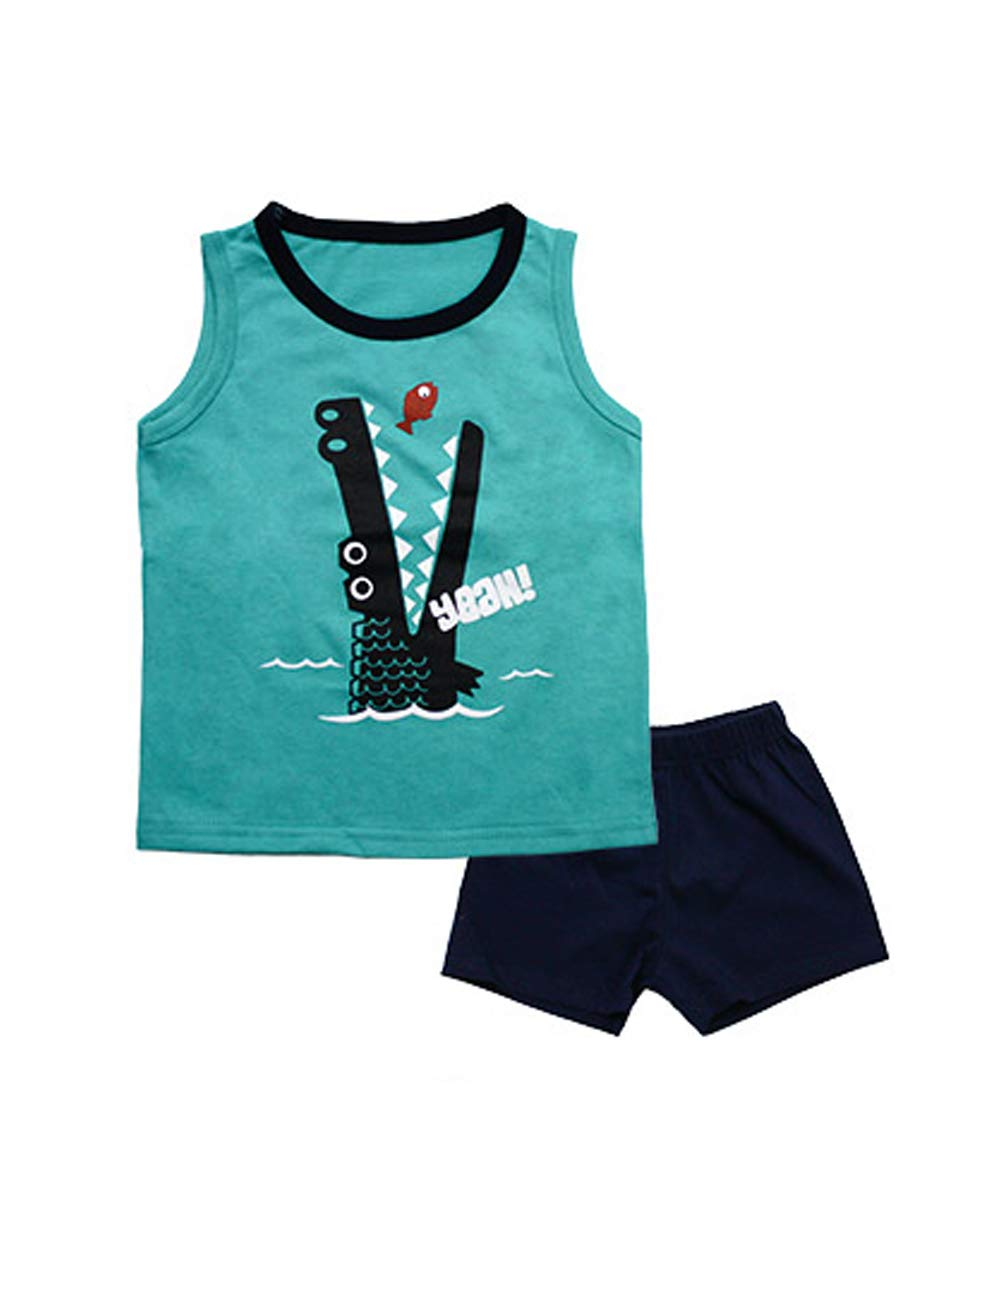 10STAR11 Boys Unique 100% Cotton Durable Vivid Printing T-Shirt and Shorts Clothing Set S266,7